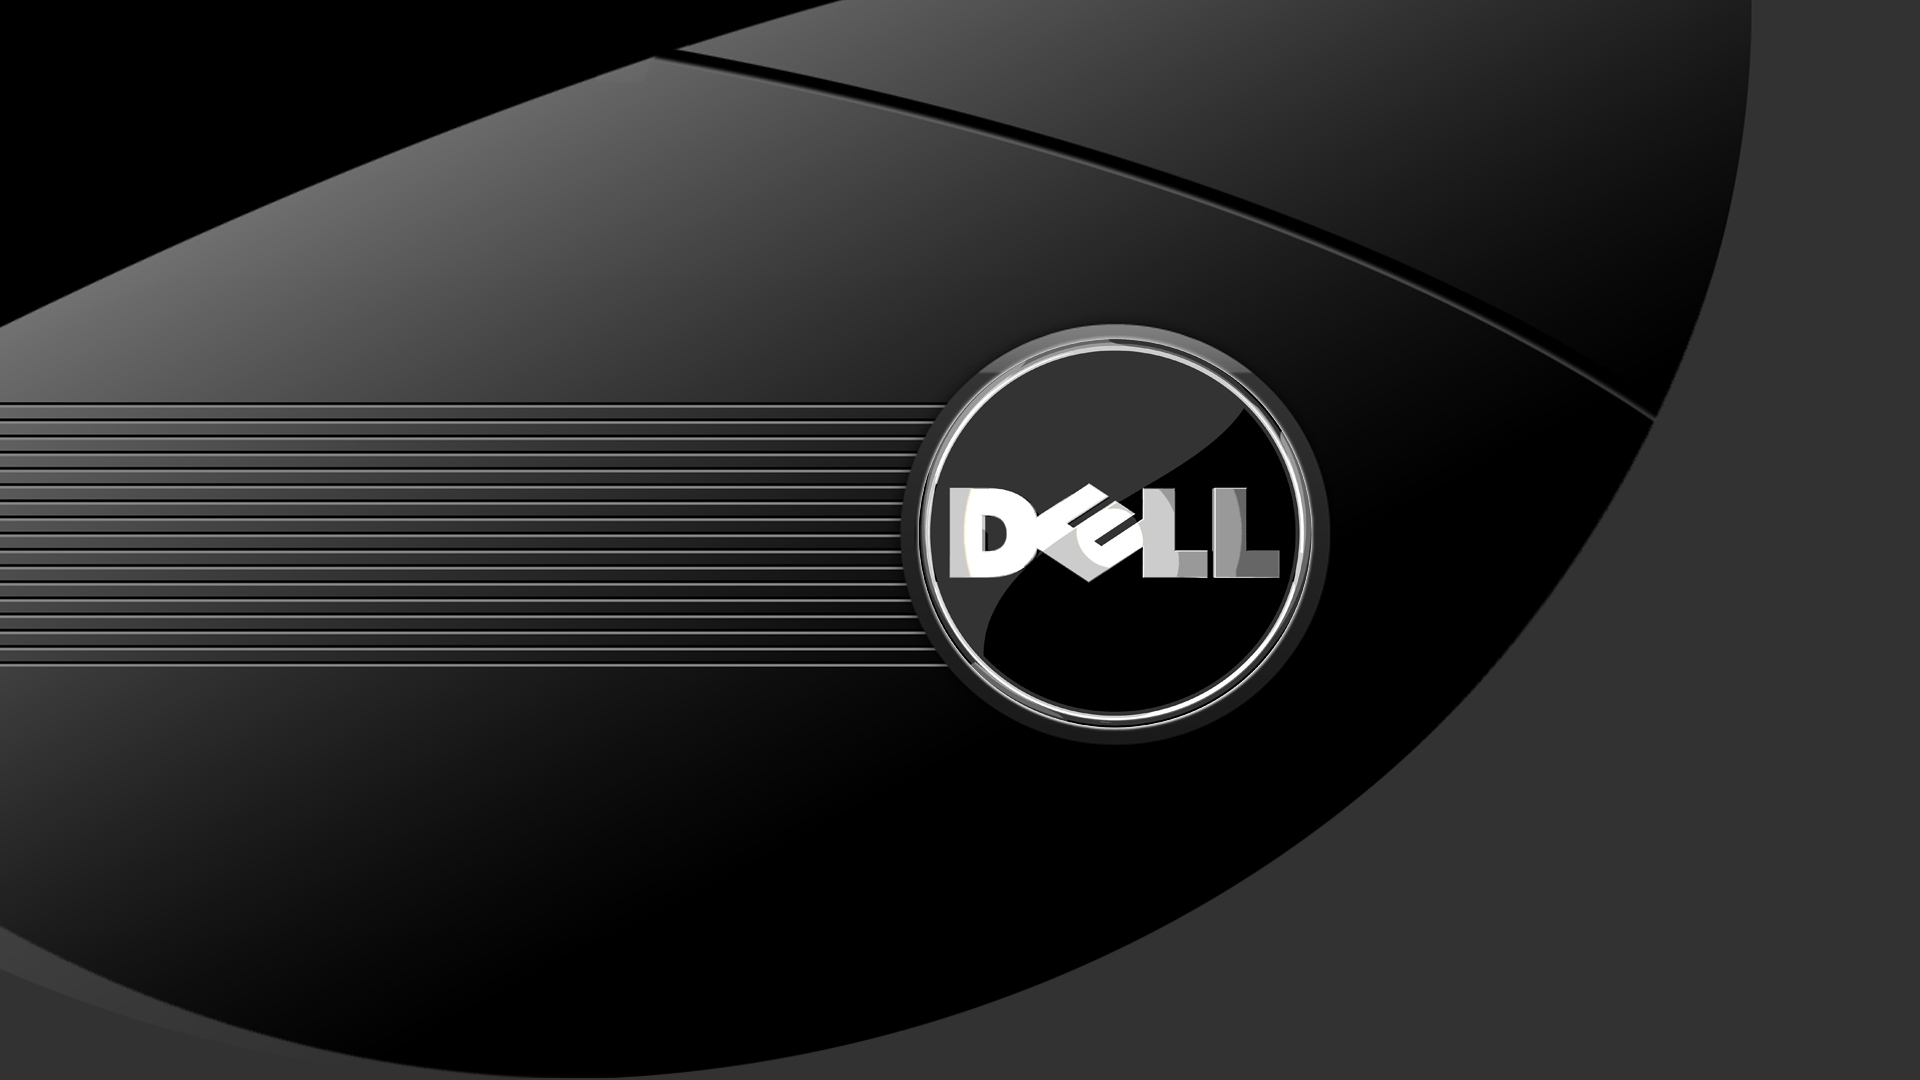 Dell Full HD Wallpapers